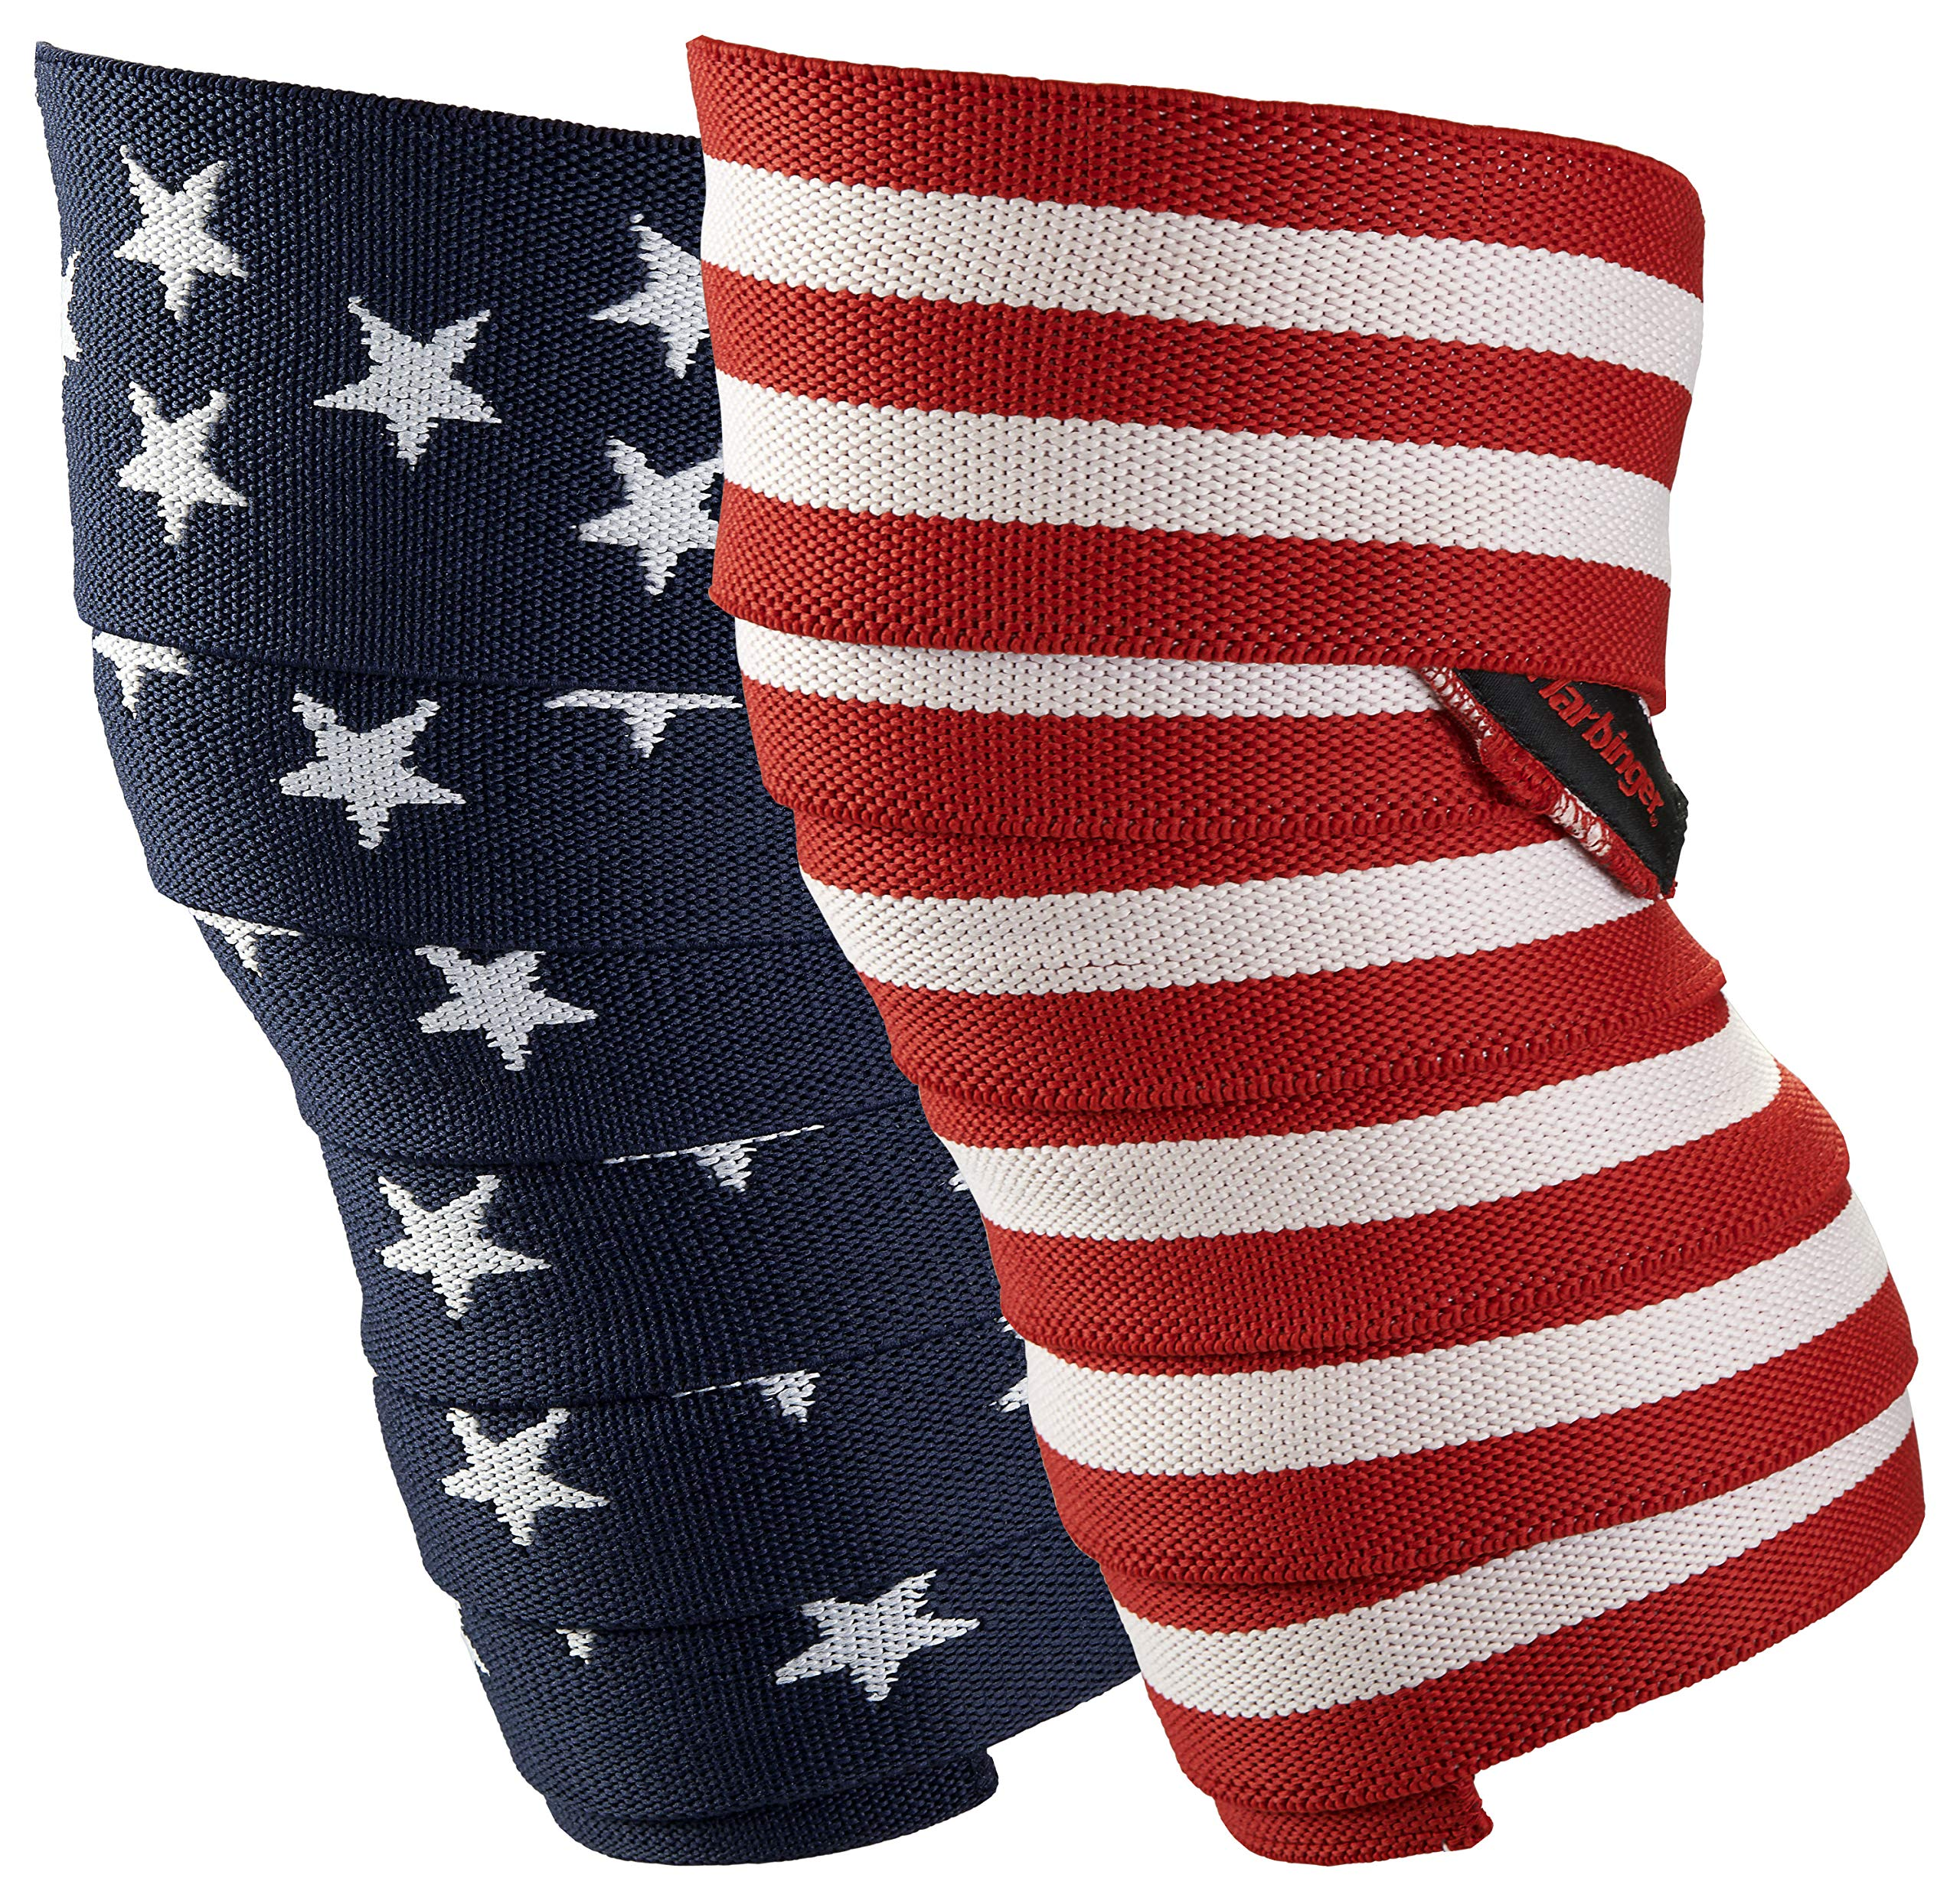 Harbinger Red Line 78-Inch Knee Wraps for Weightlifting (Pair), Flag by Harbinger